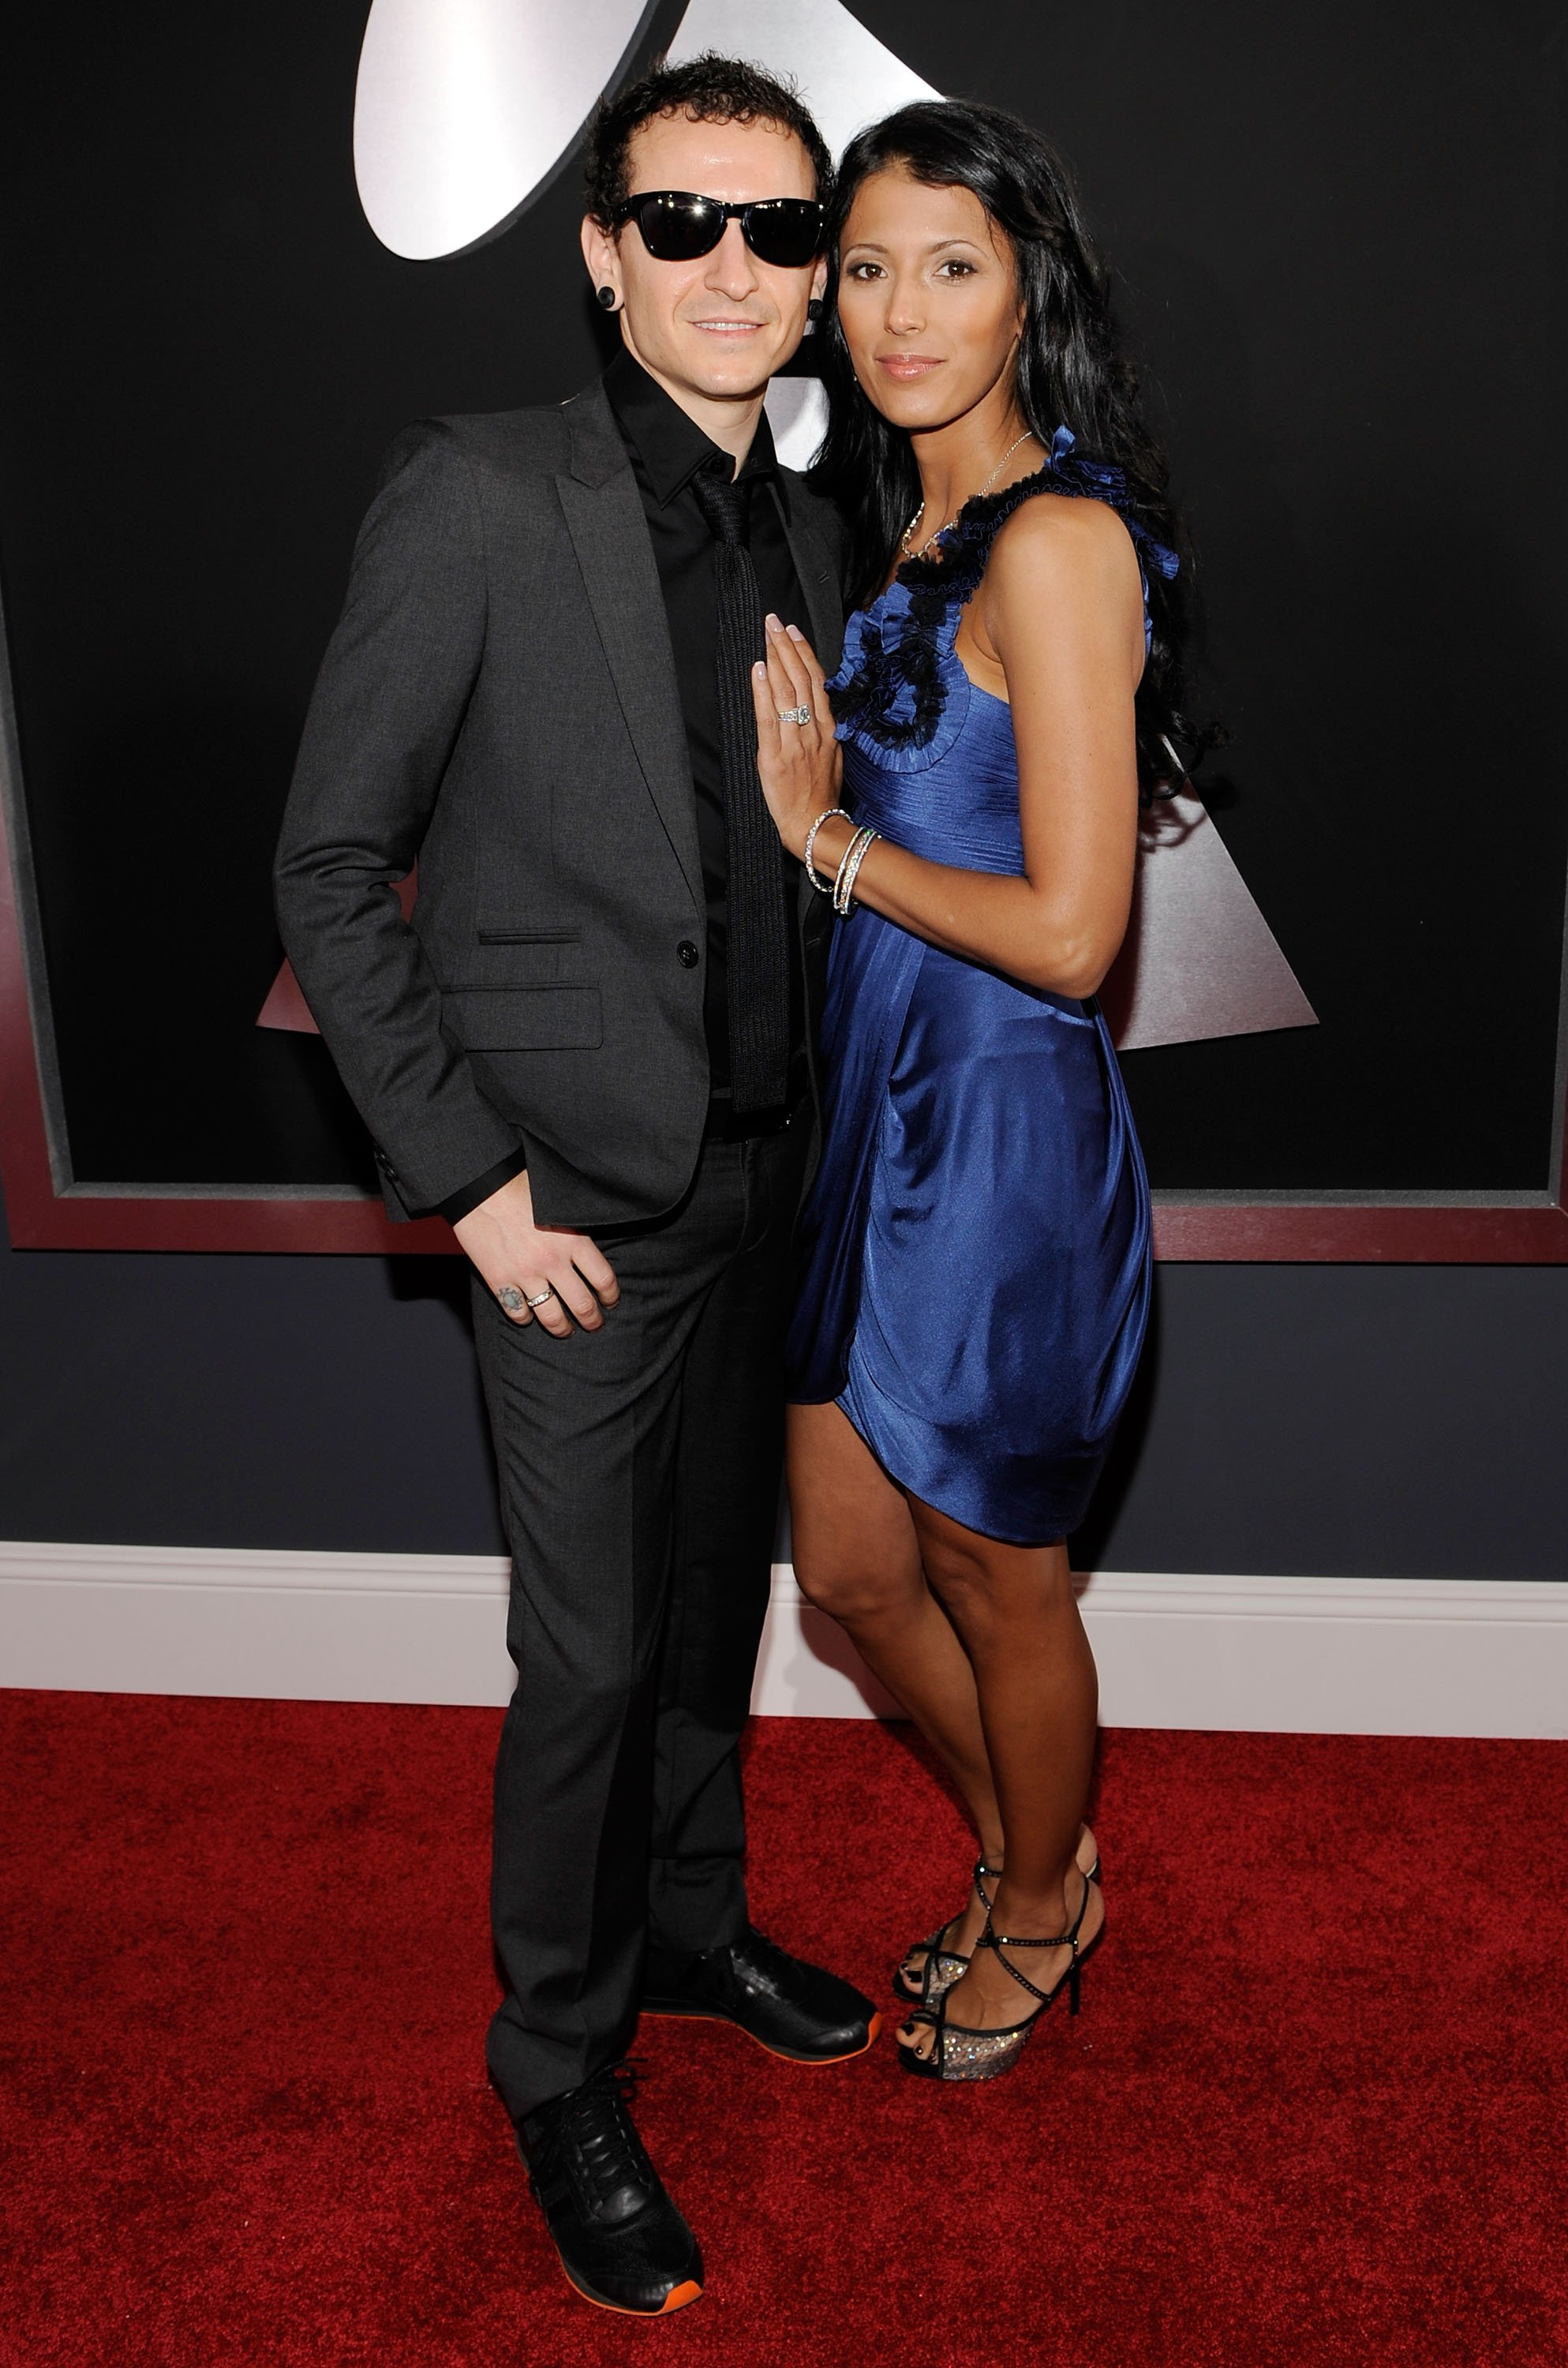 Chester Bennington and Talinda Bentley arrive at the 52nd Annual GRAMMY Awards held at Staples Center on January 31, 2010 in Los Angeles